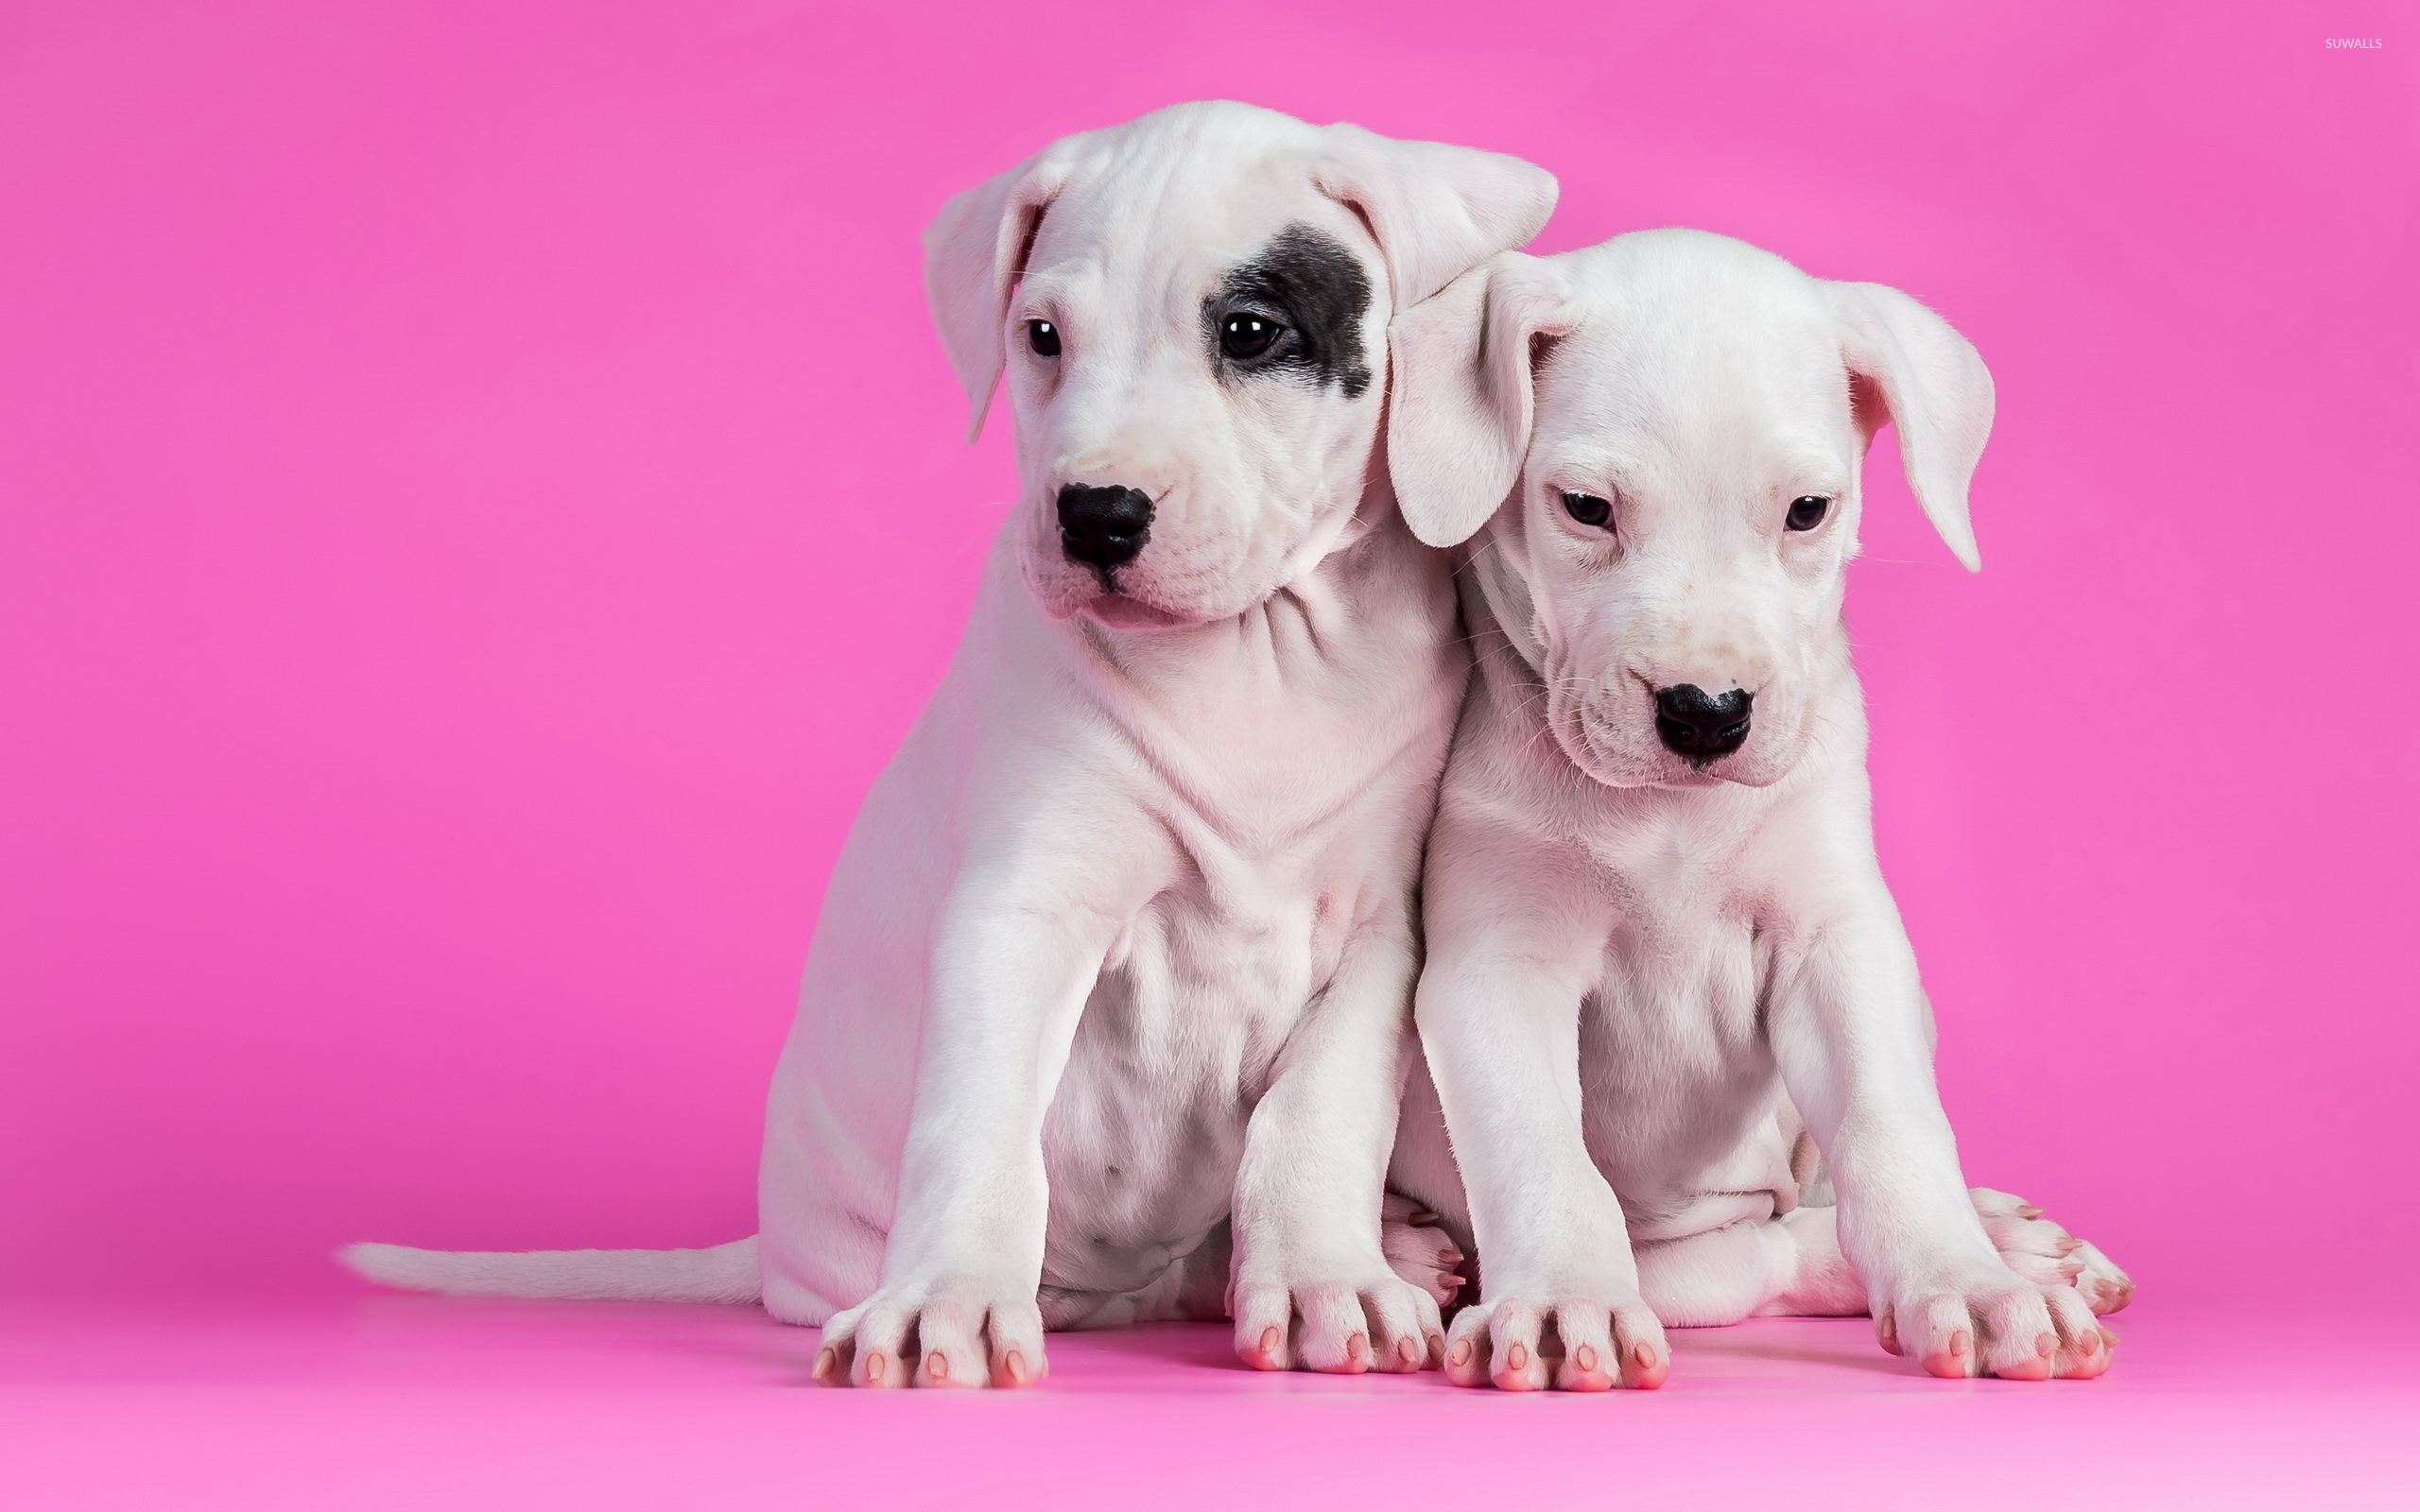 Cute White Puppies 2 Wallpaper Animal Wallpapers 39176